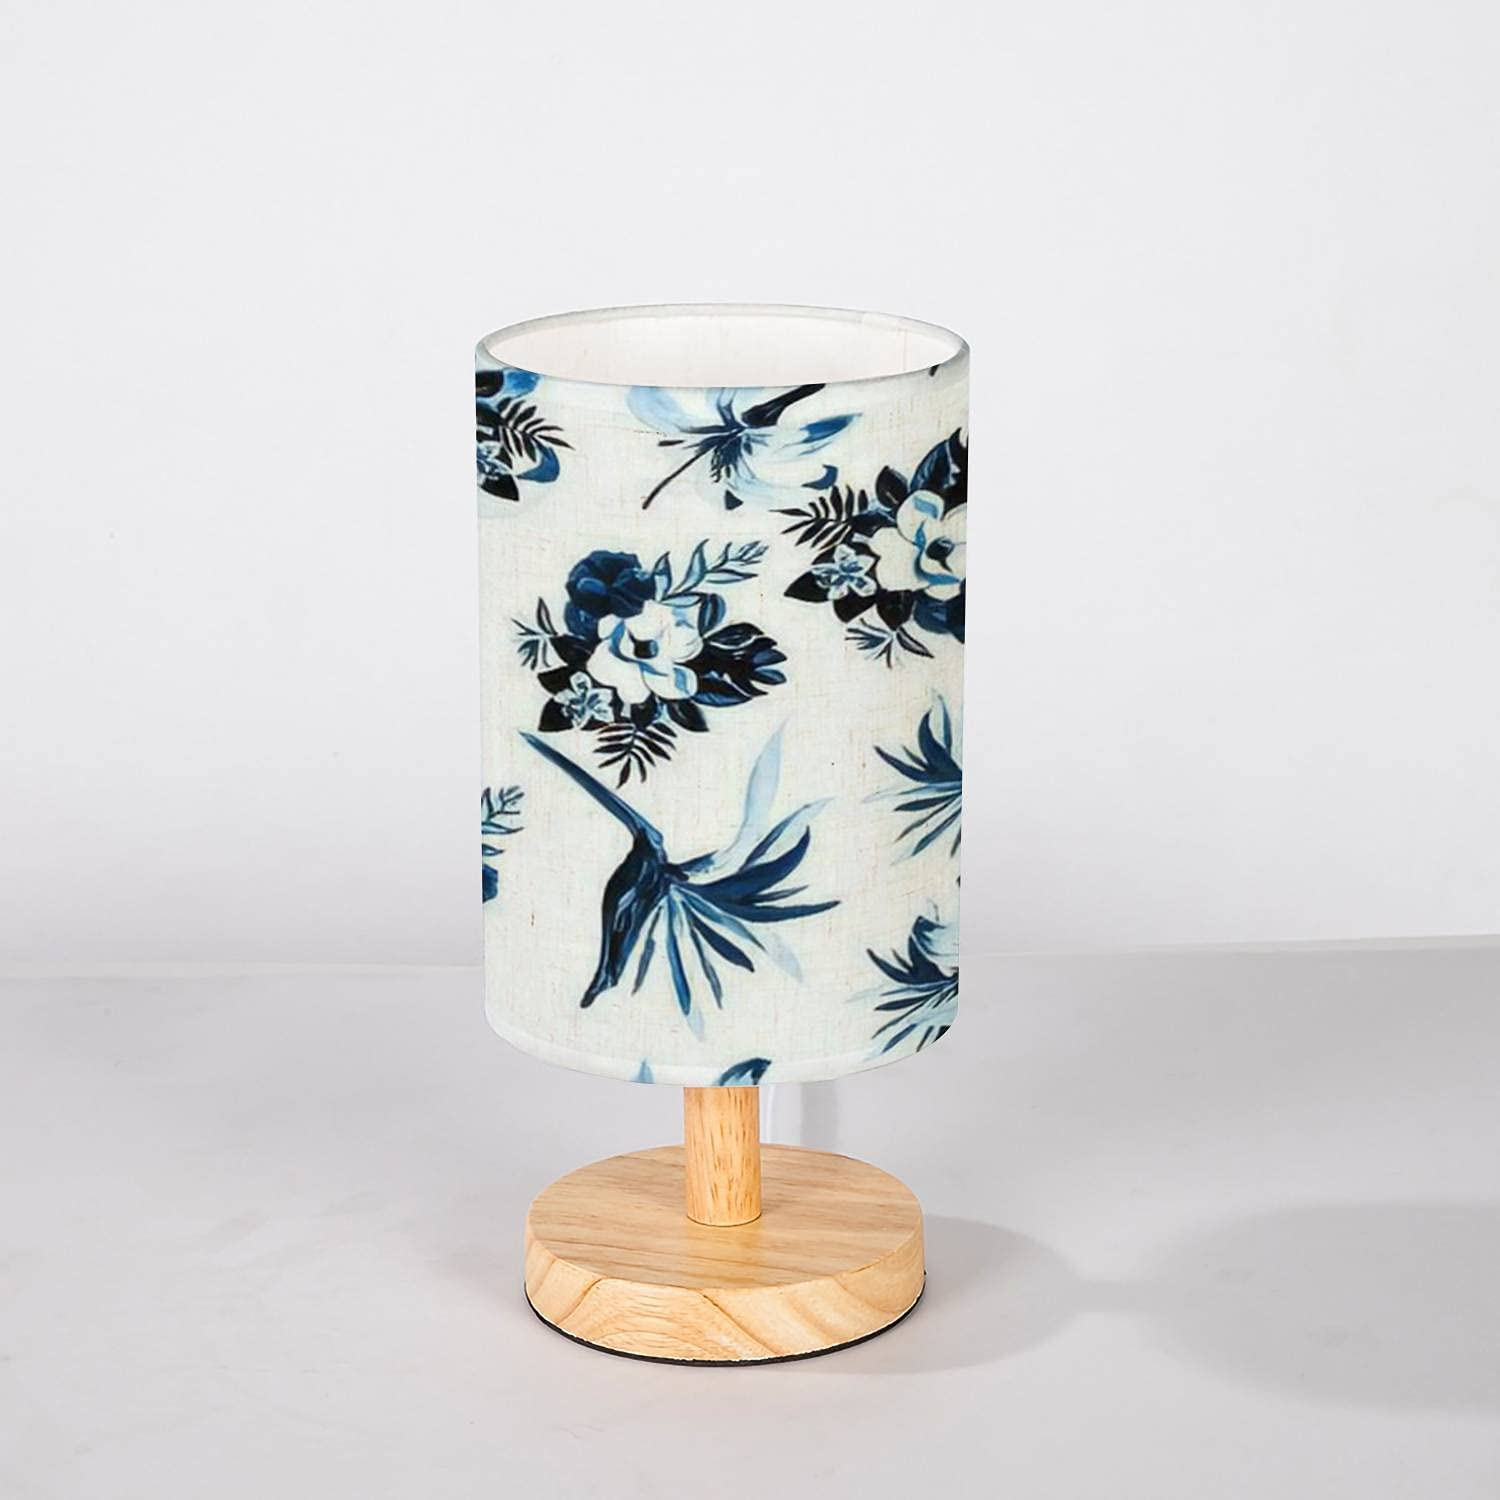 New product Minimalist New Orleans Mall Bedside Table Lamp Navy Indigo Seamless Pattern Leaf